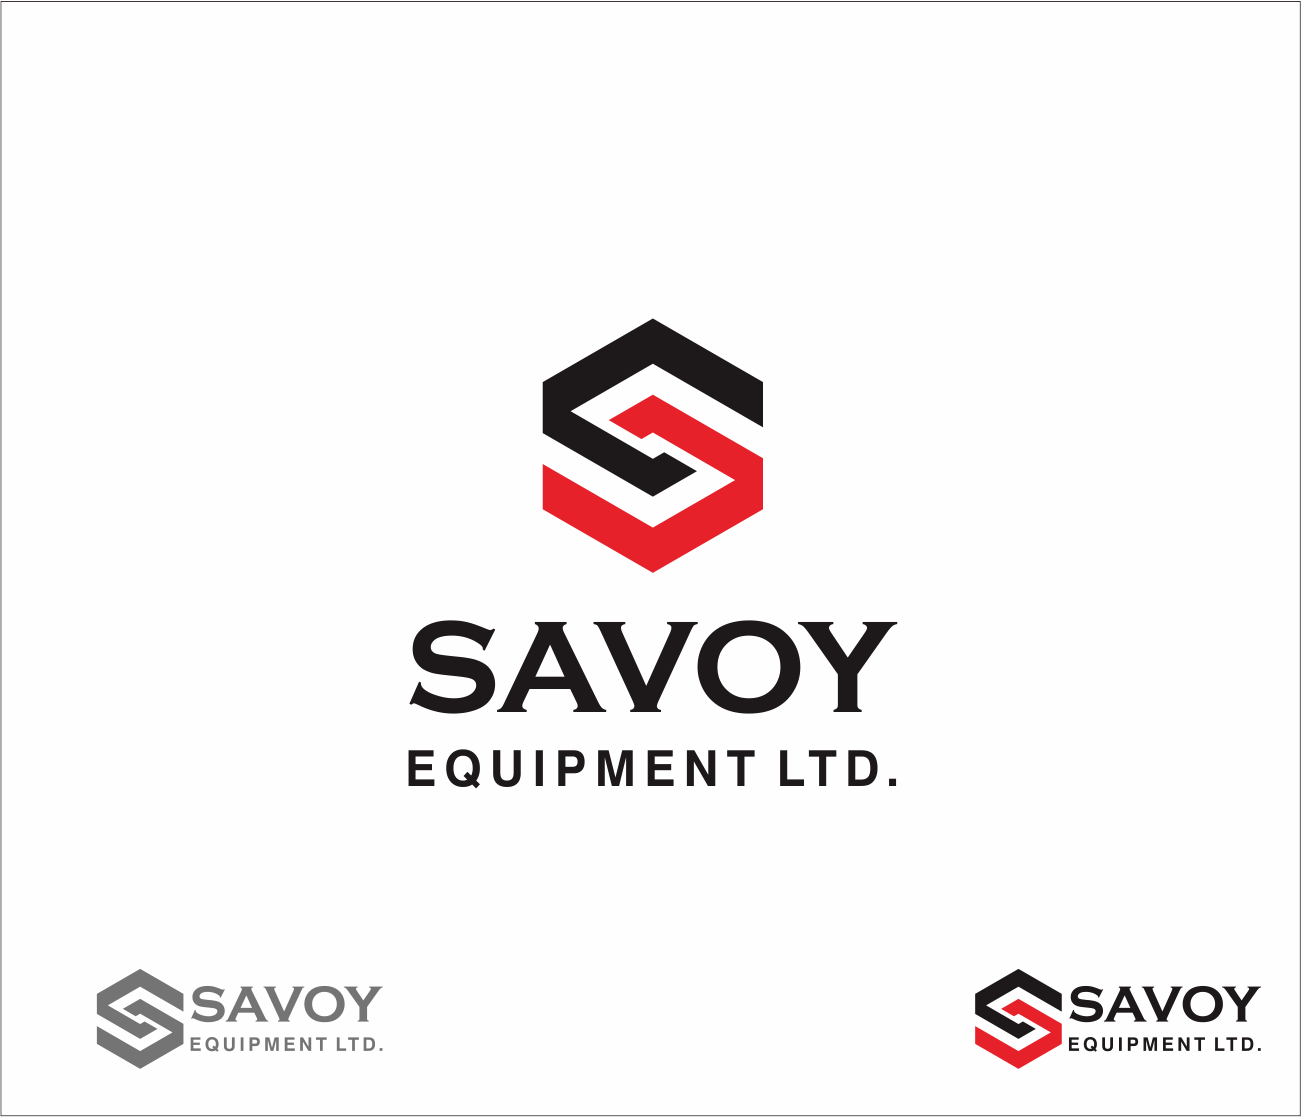 Logo Design by Armada Jamaluddin - Entry No. 64 in the Logo Design Contest Inspiring Logo Design for Savoy Equipment Ltd..